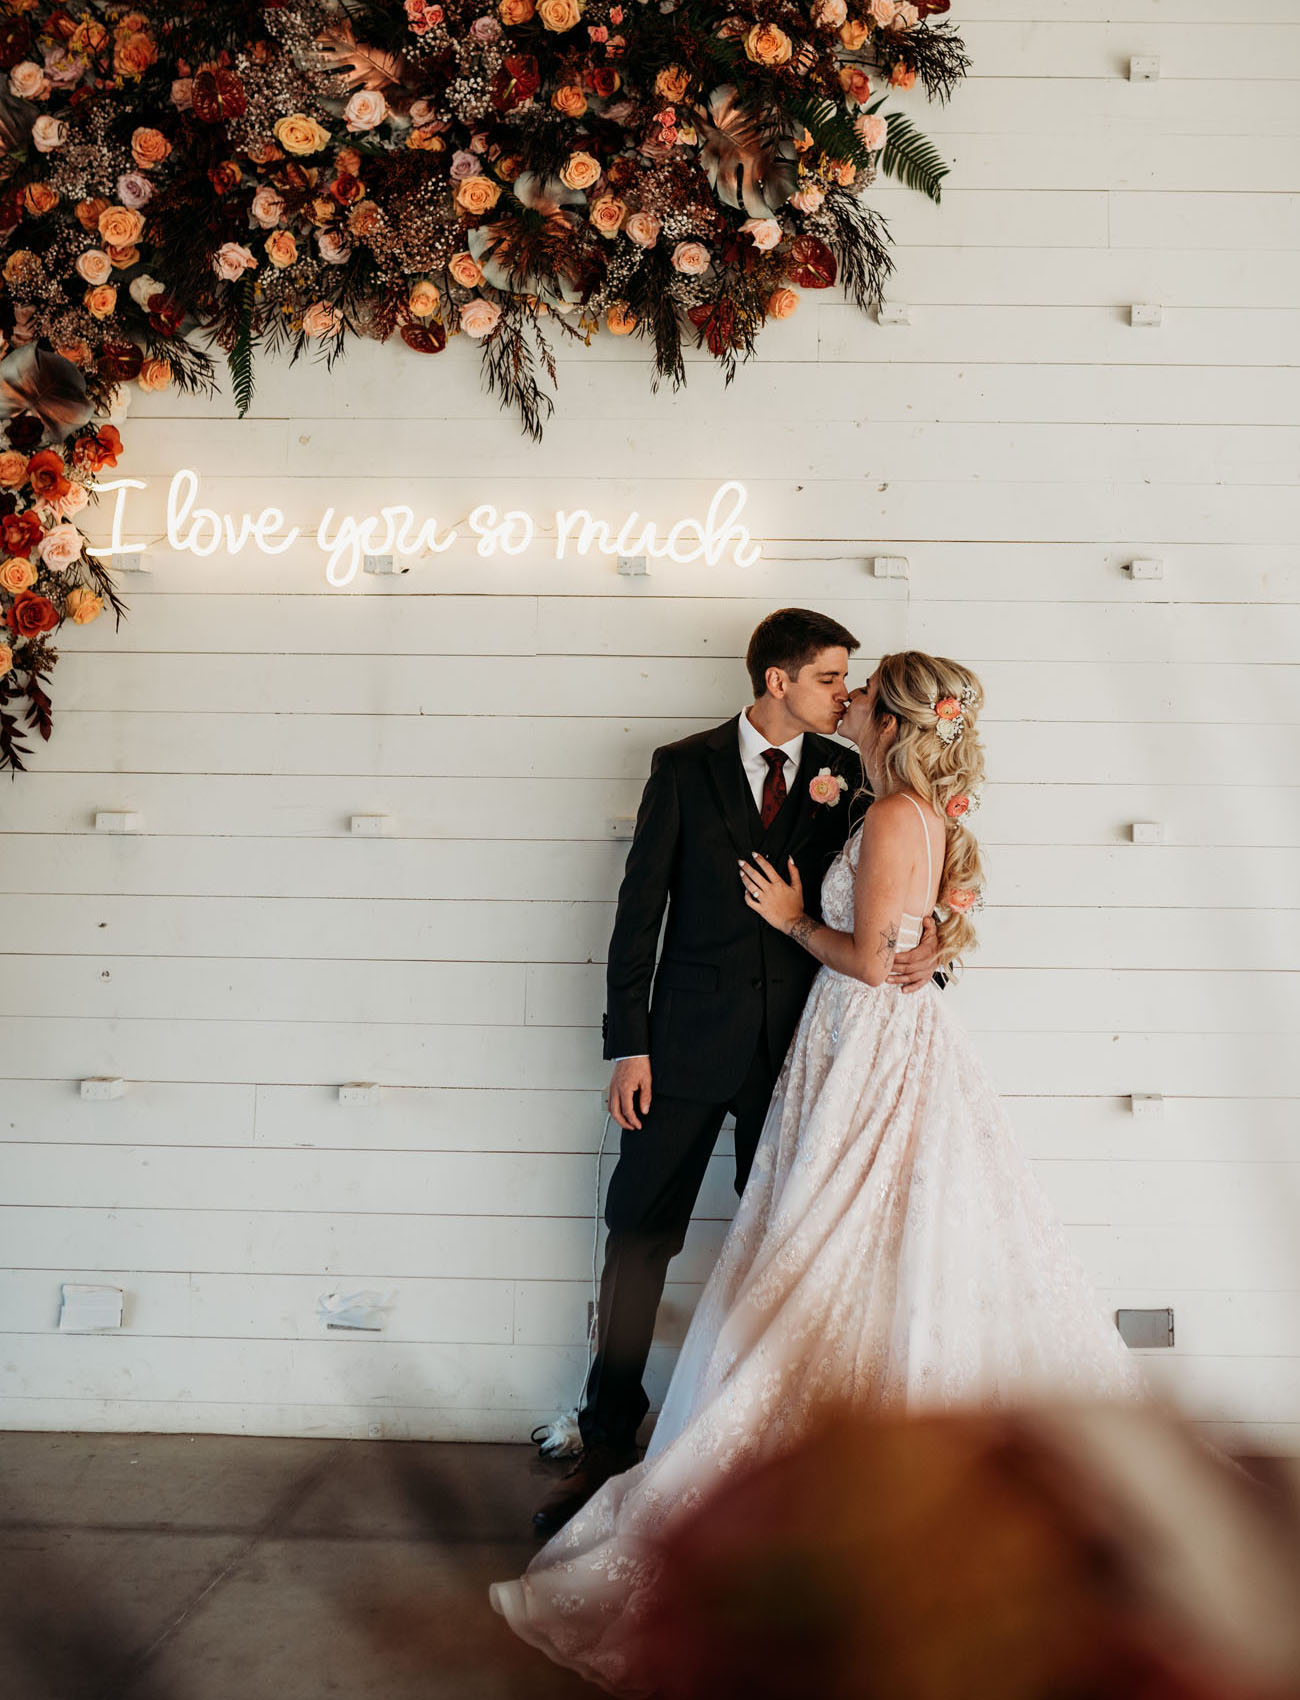 i love you so much wedding neon sign